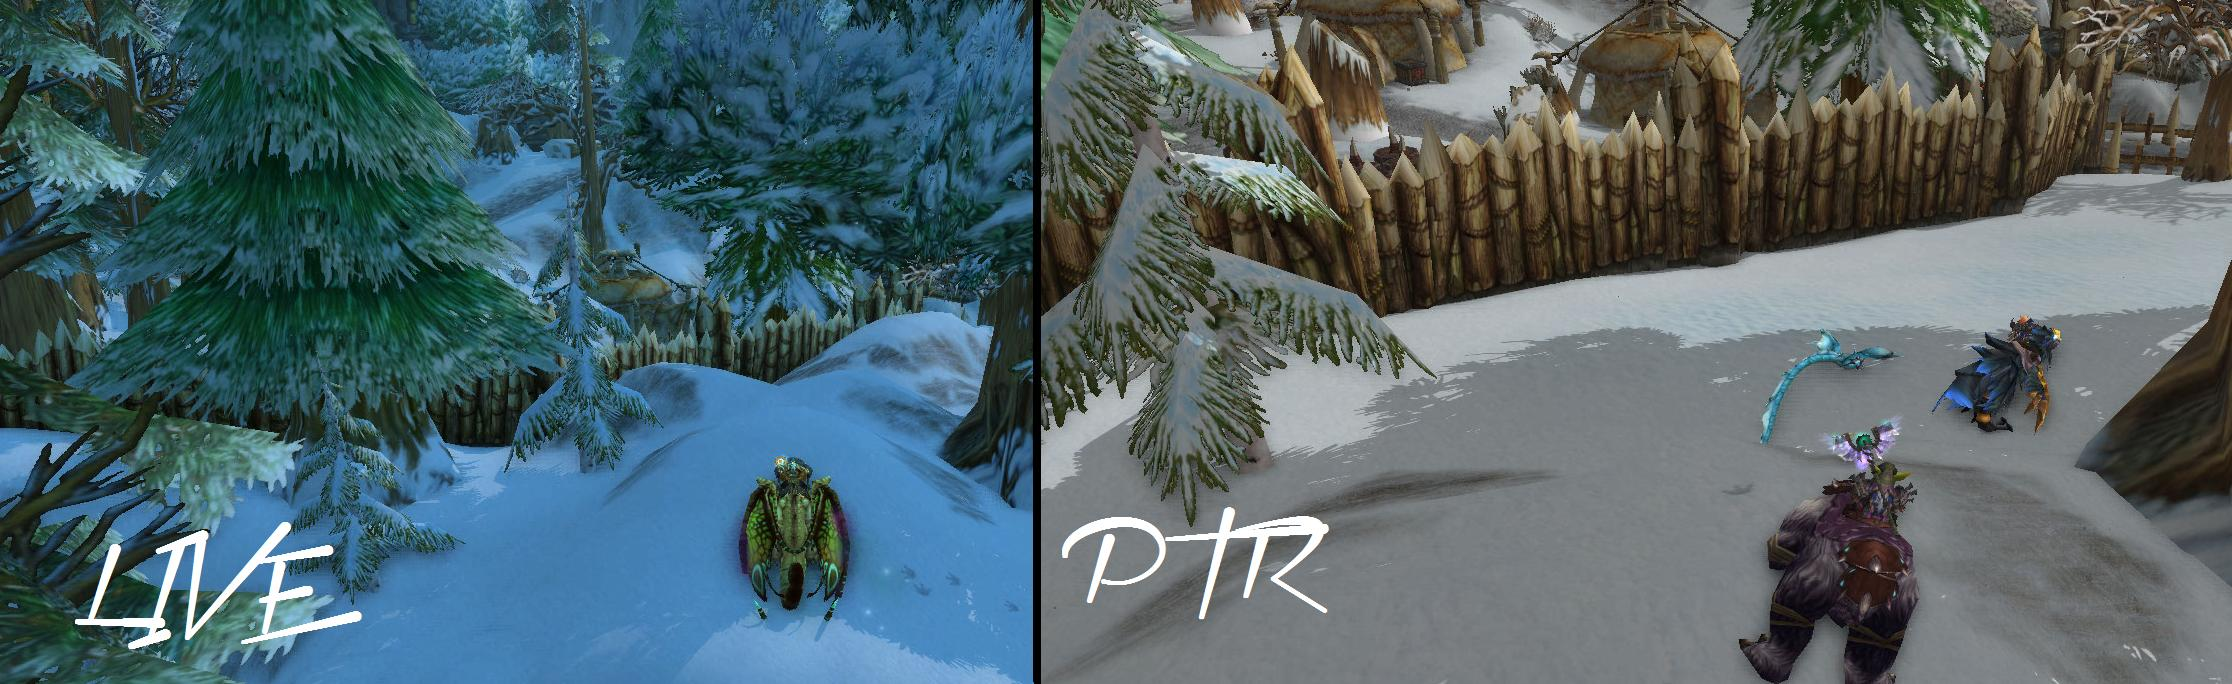 AV PTR Changes 2